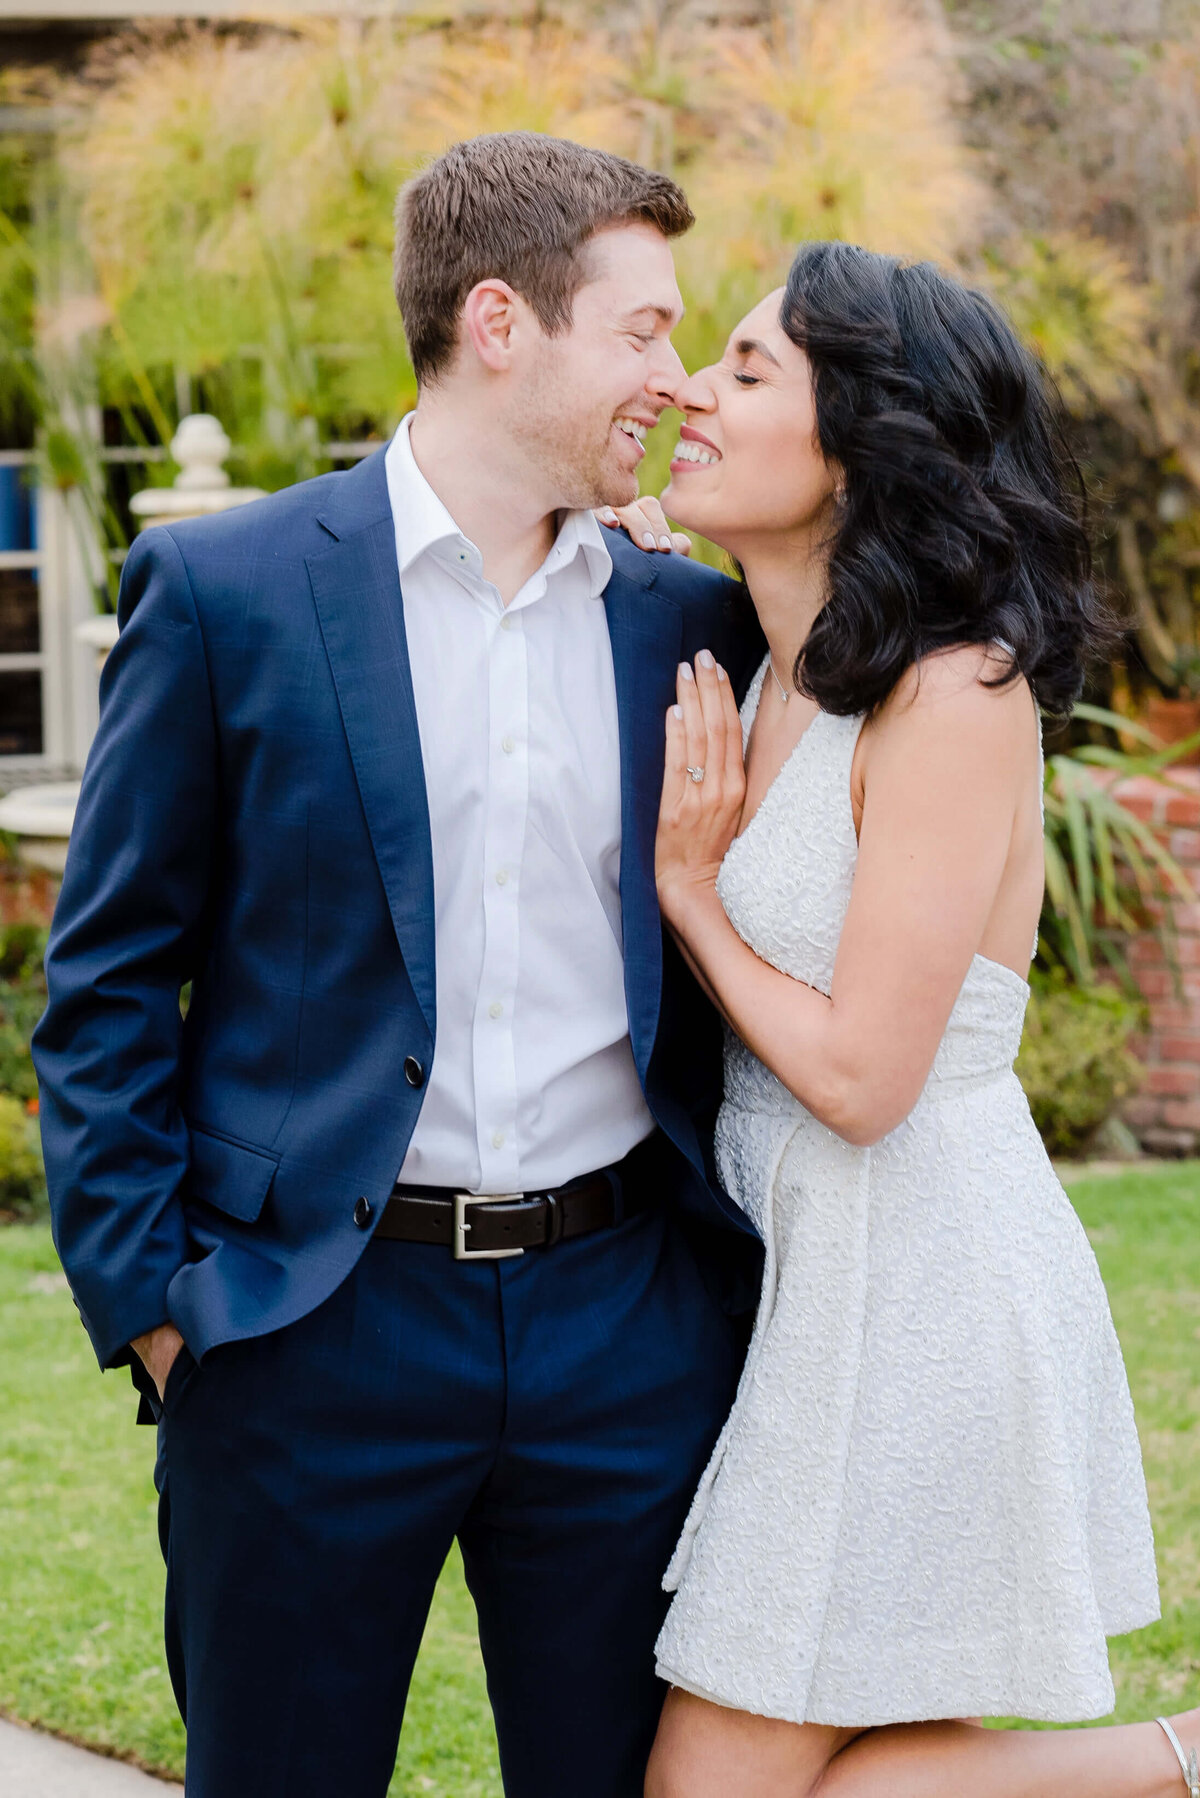 Los Angeles Wedding and Engagement Photographer Karina Pires Photography - Serving the areas of LA, Santa Monica, and Southern California.